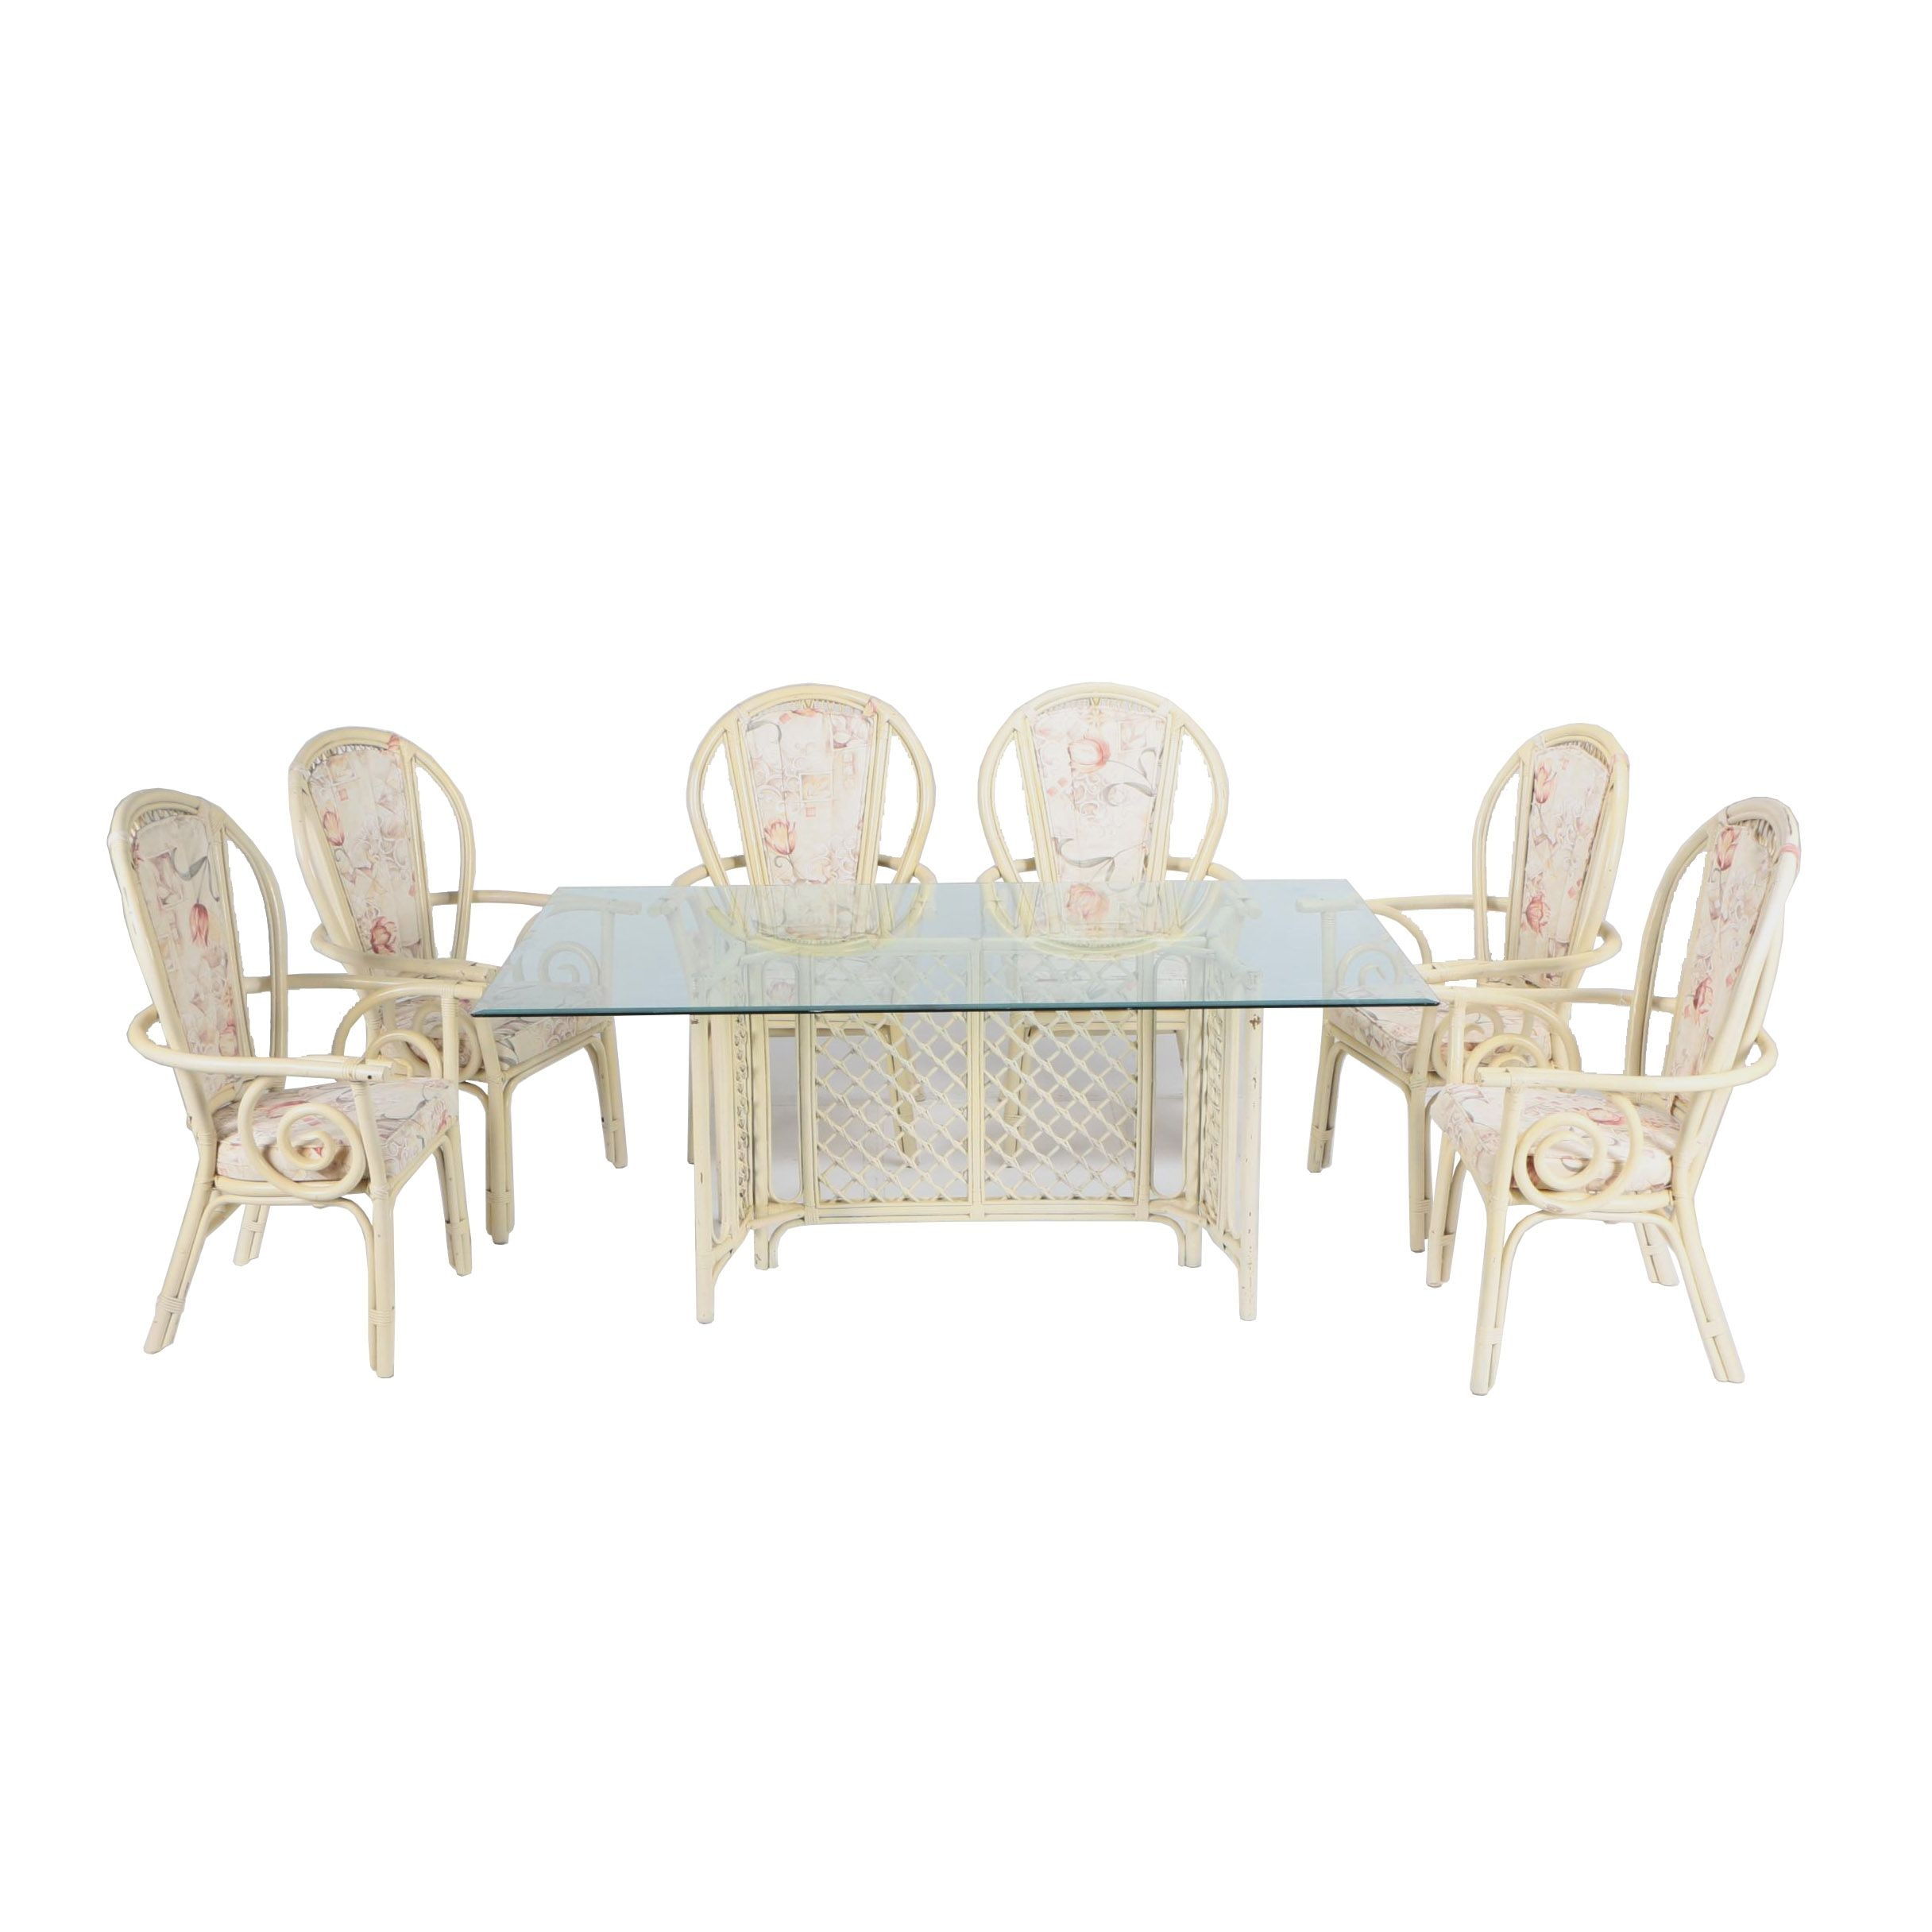 Vintage Painted Rattan Dining Set with Glass Top Table and Six Armchairs